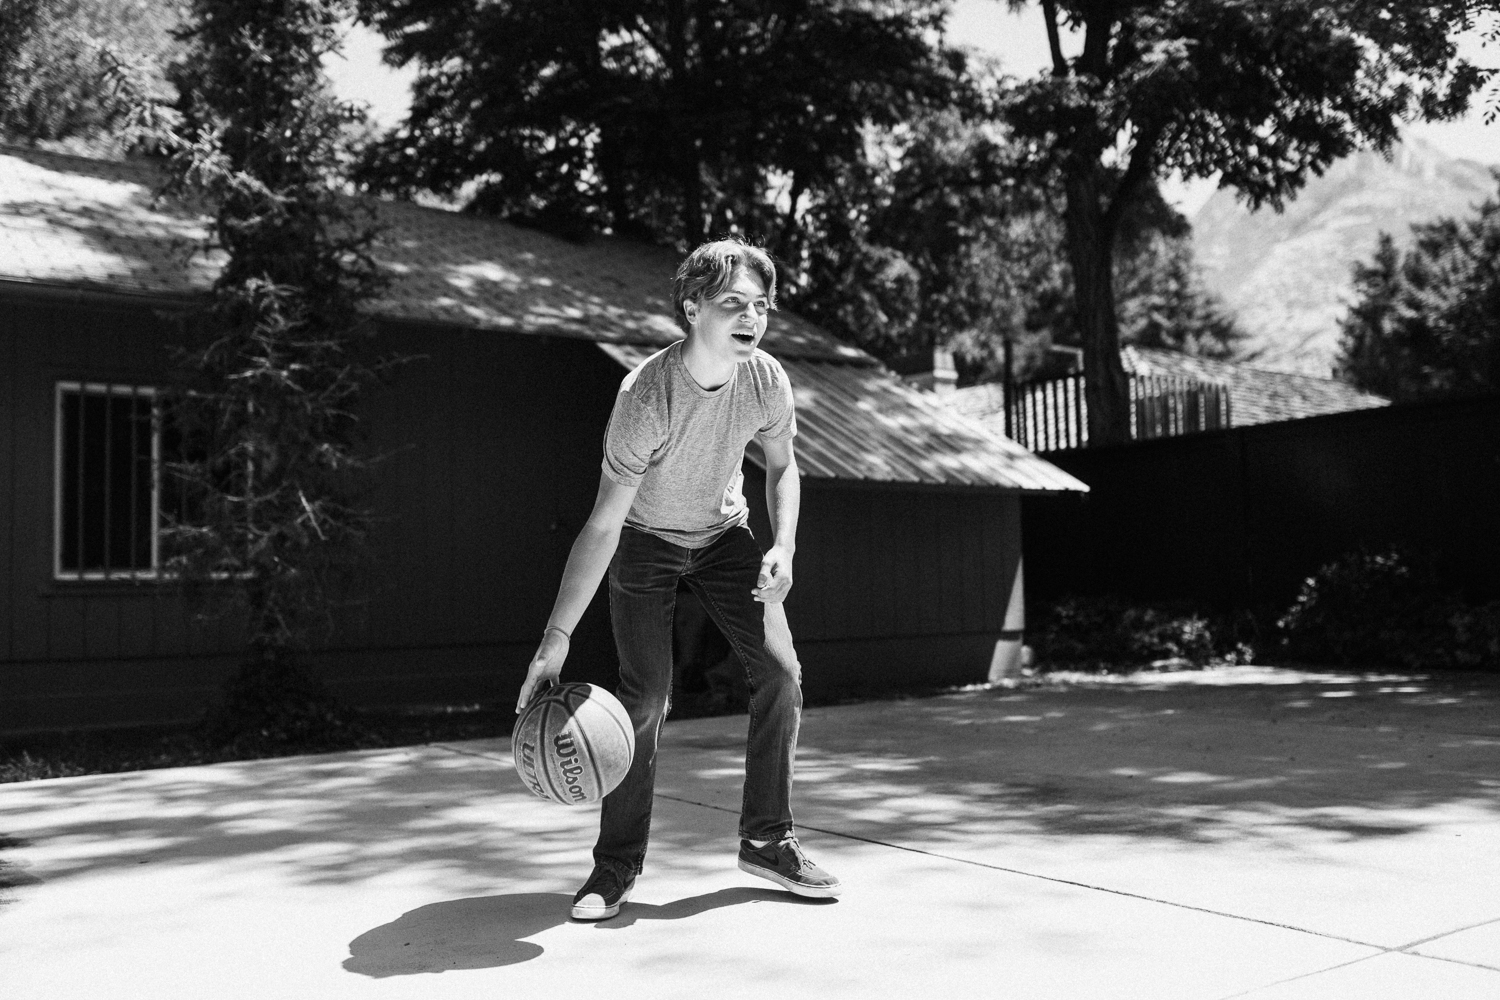 candid-natural-and-artistic-candid-photo-of-boy-playing-basketball-in-backyard-salt lake city-utah